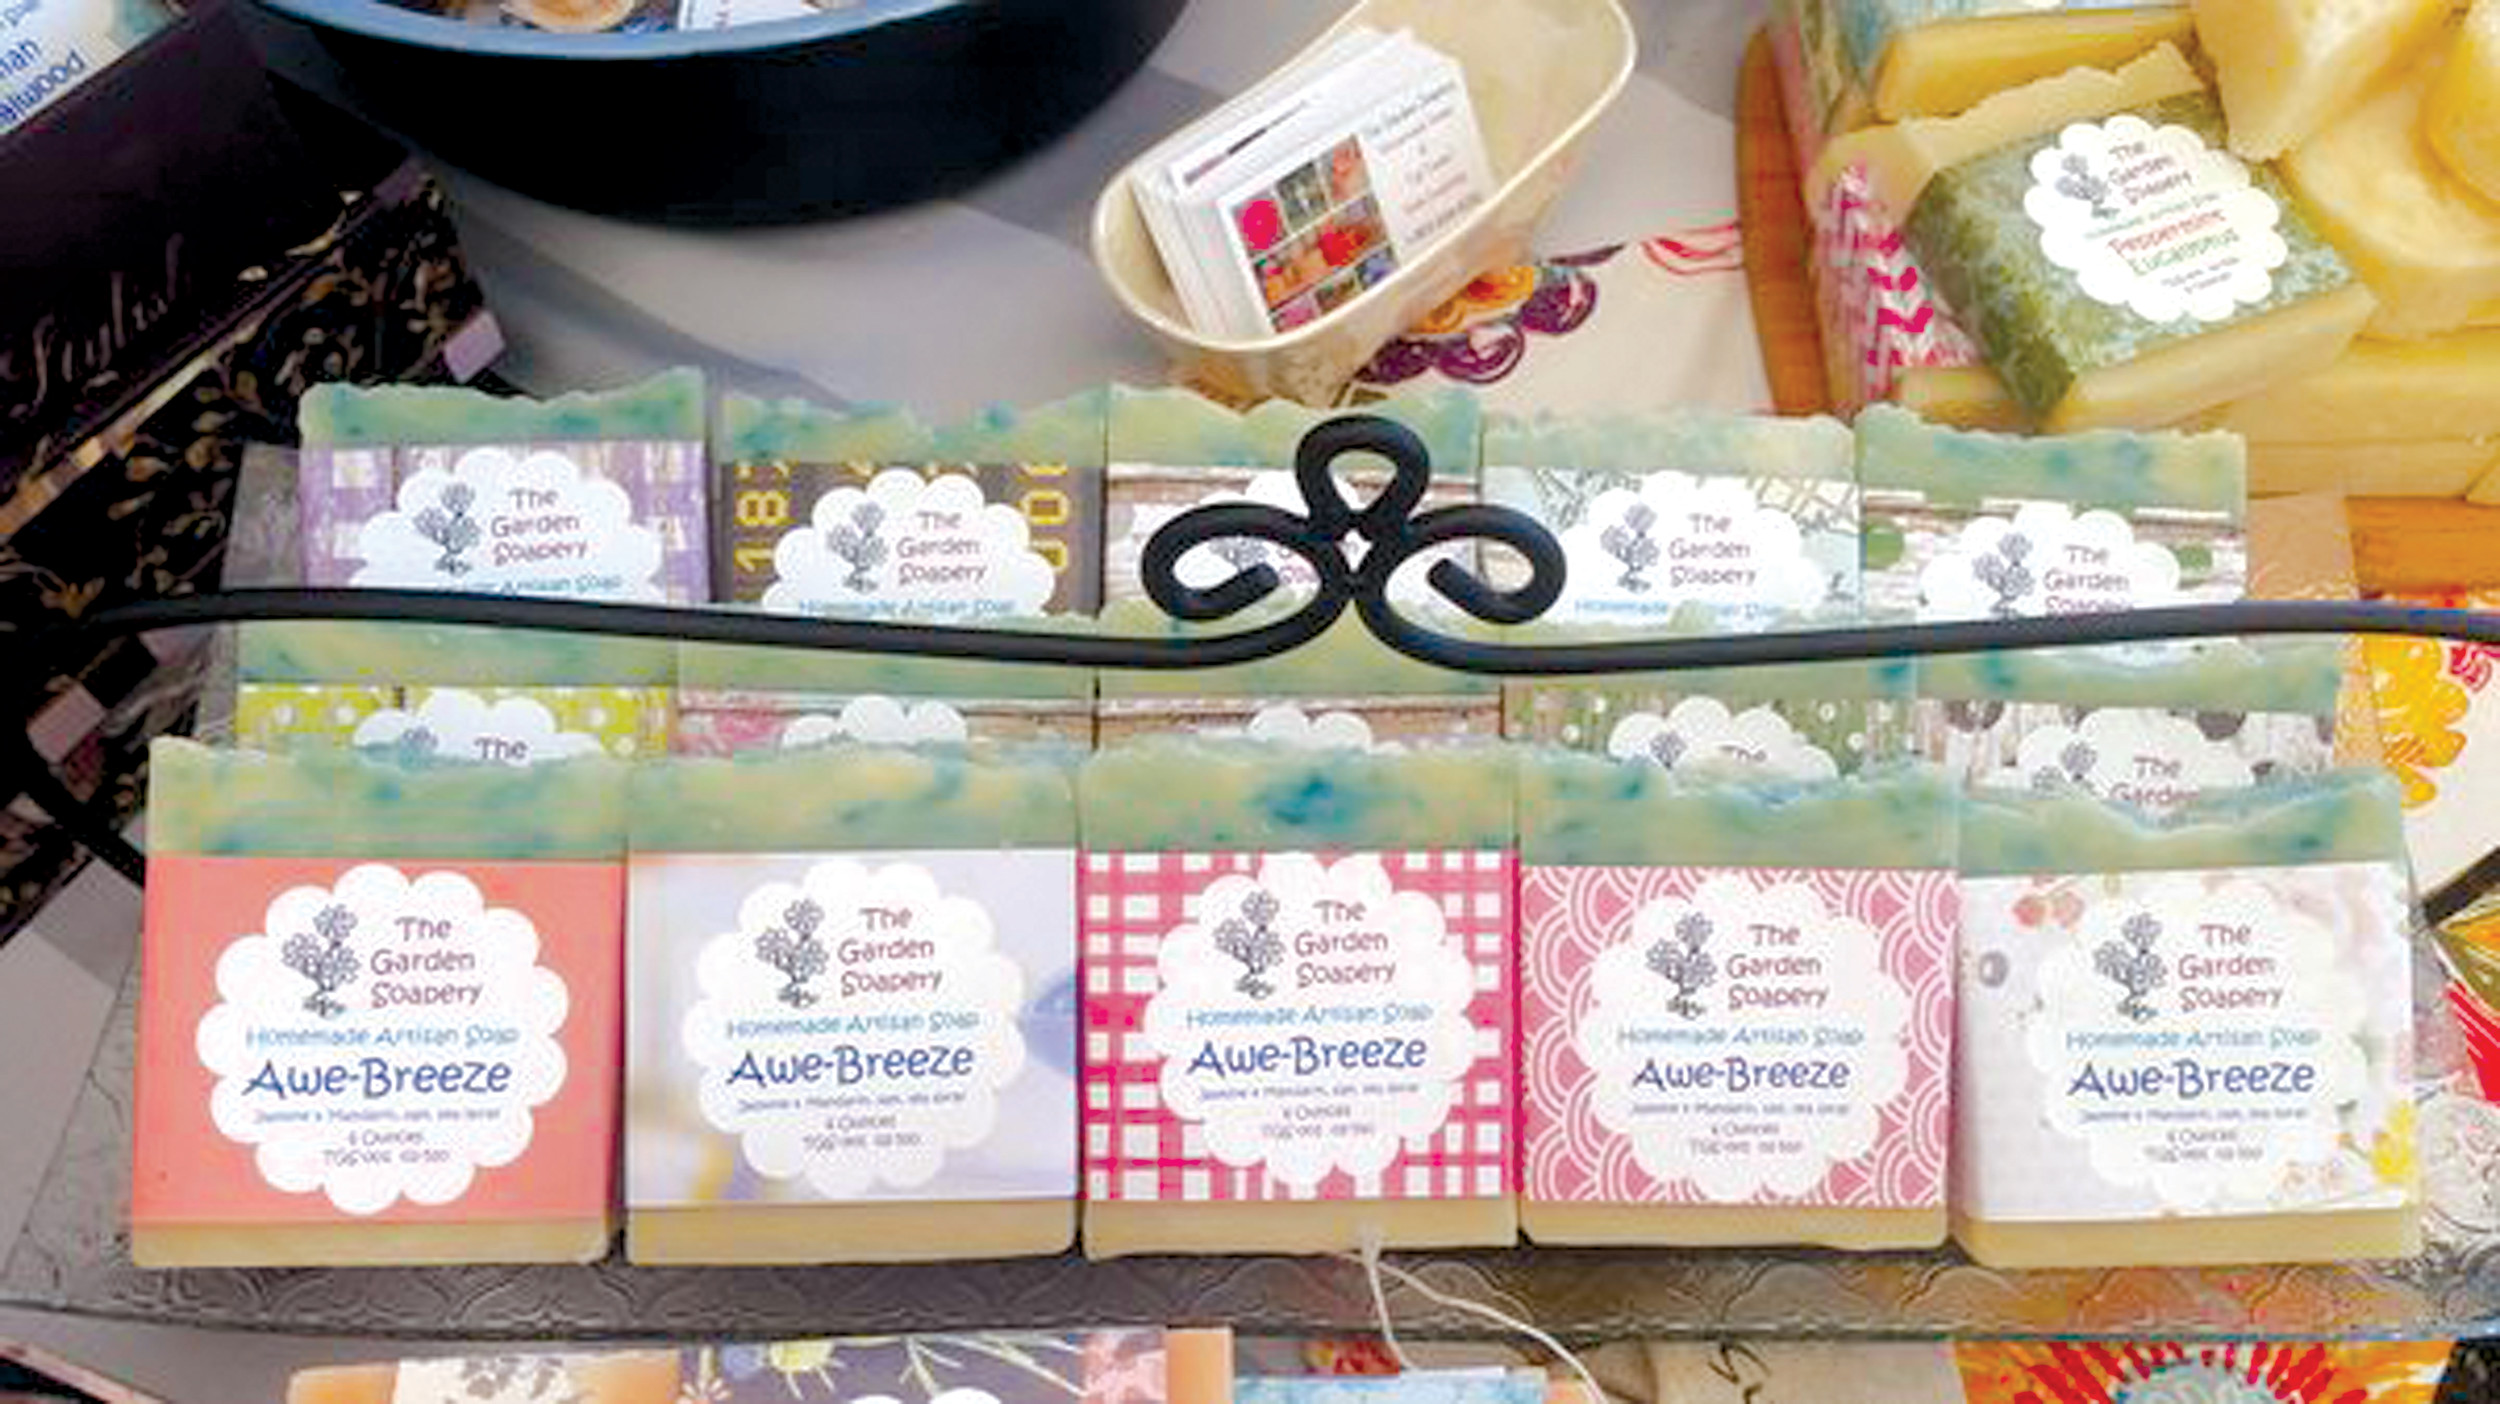 Vi Crutchley and Art Pierson travel regularly to festivals and craft shows in S.C. and N.C. with a variety of soaps, lotions, lip balms and many other items.